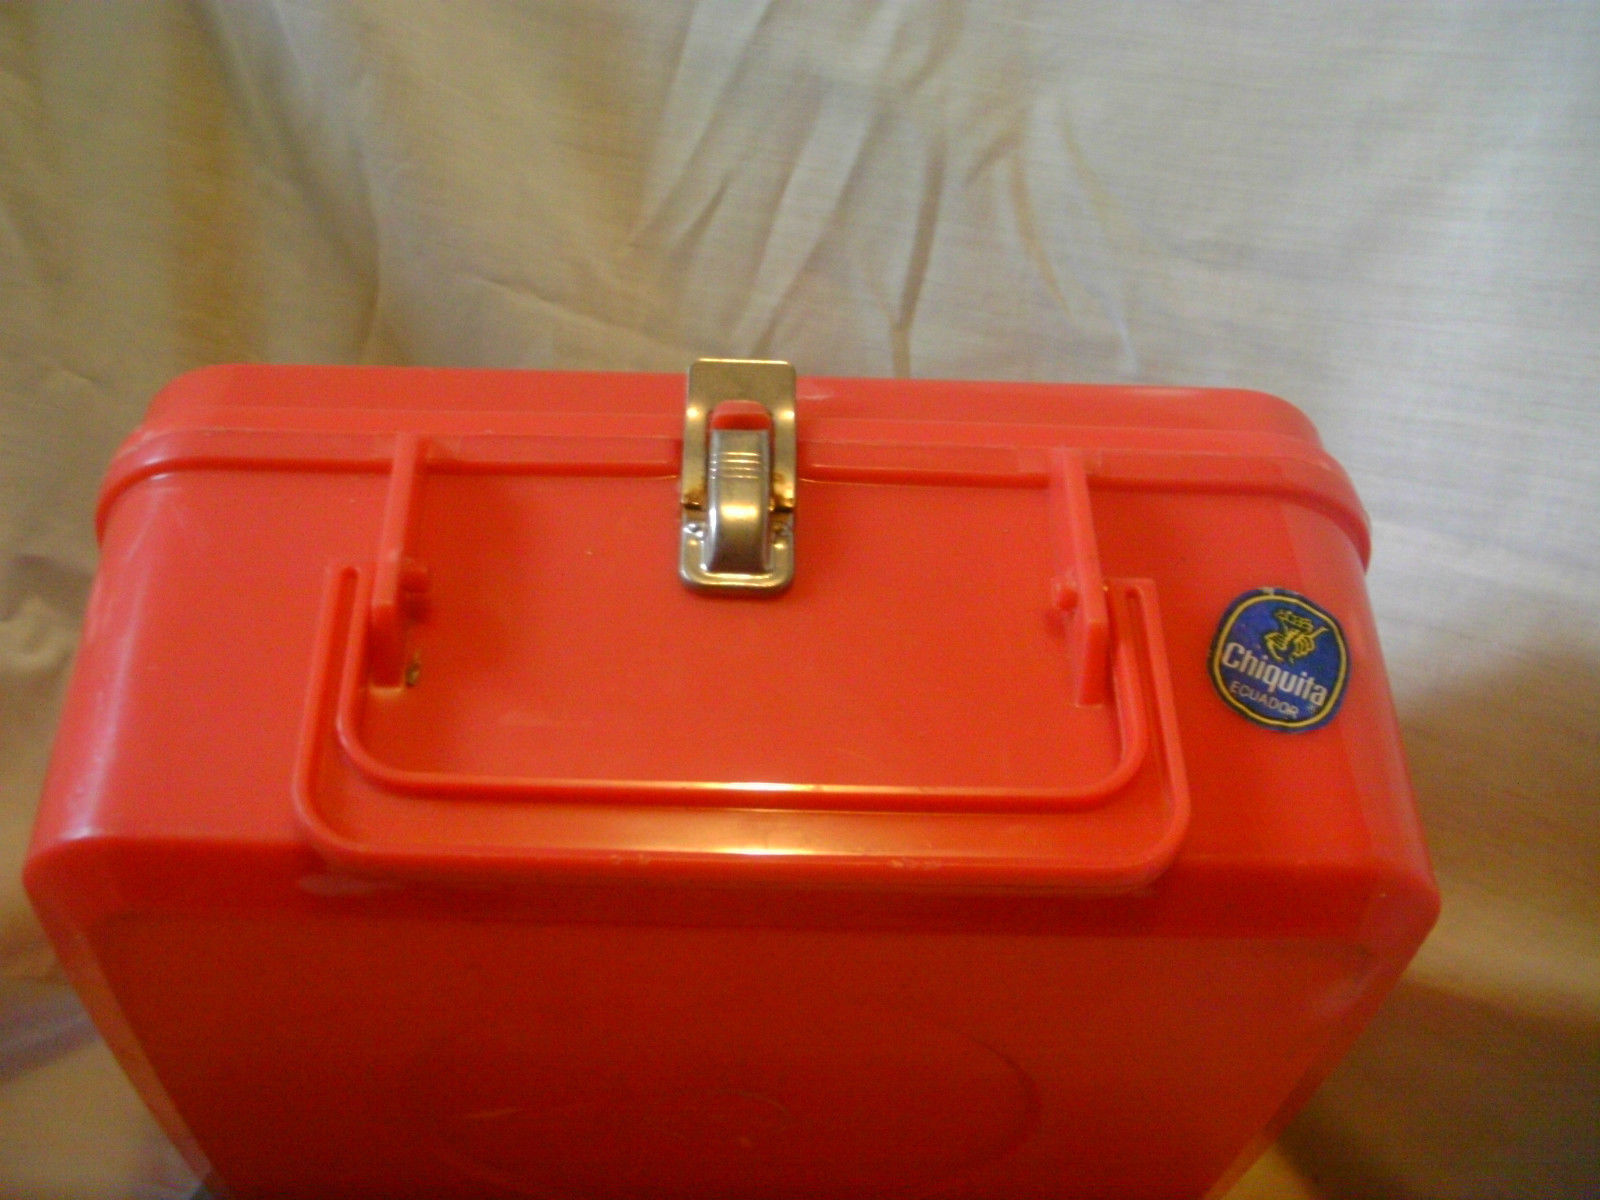 Disney's Dick Tracy Lunchbox by Aladdin image 4